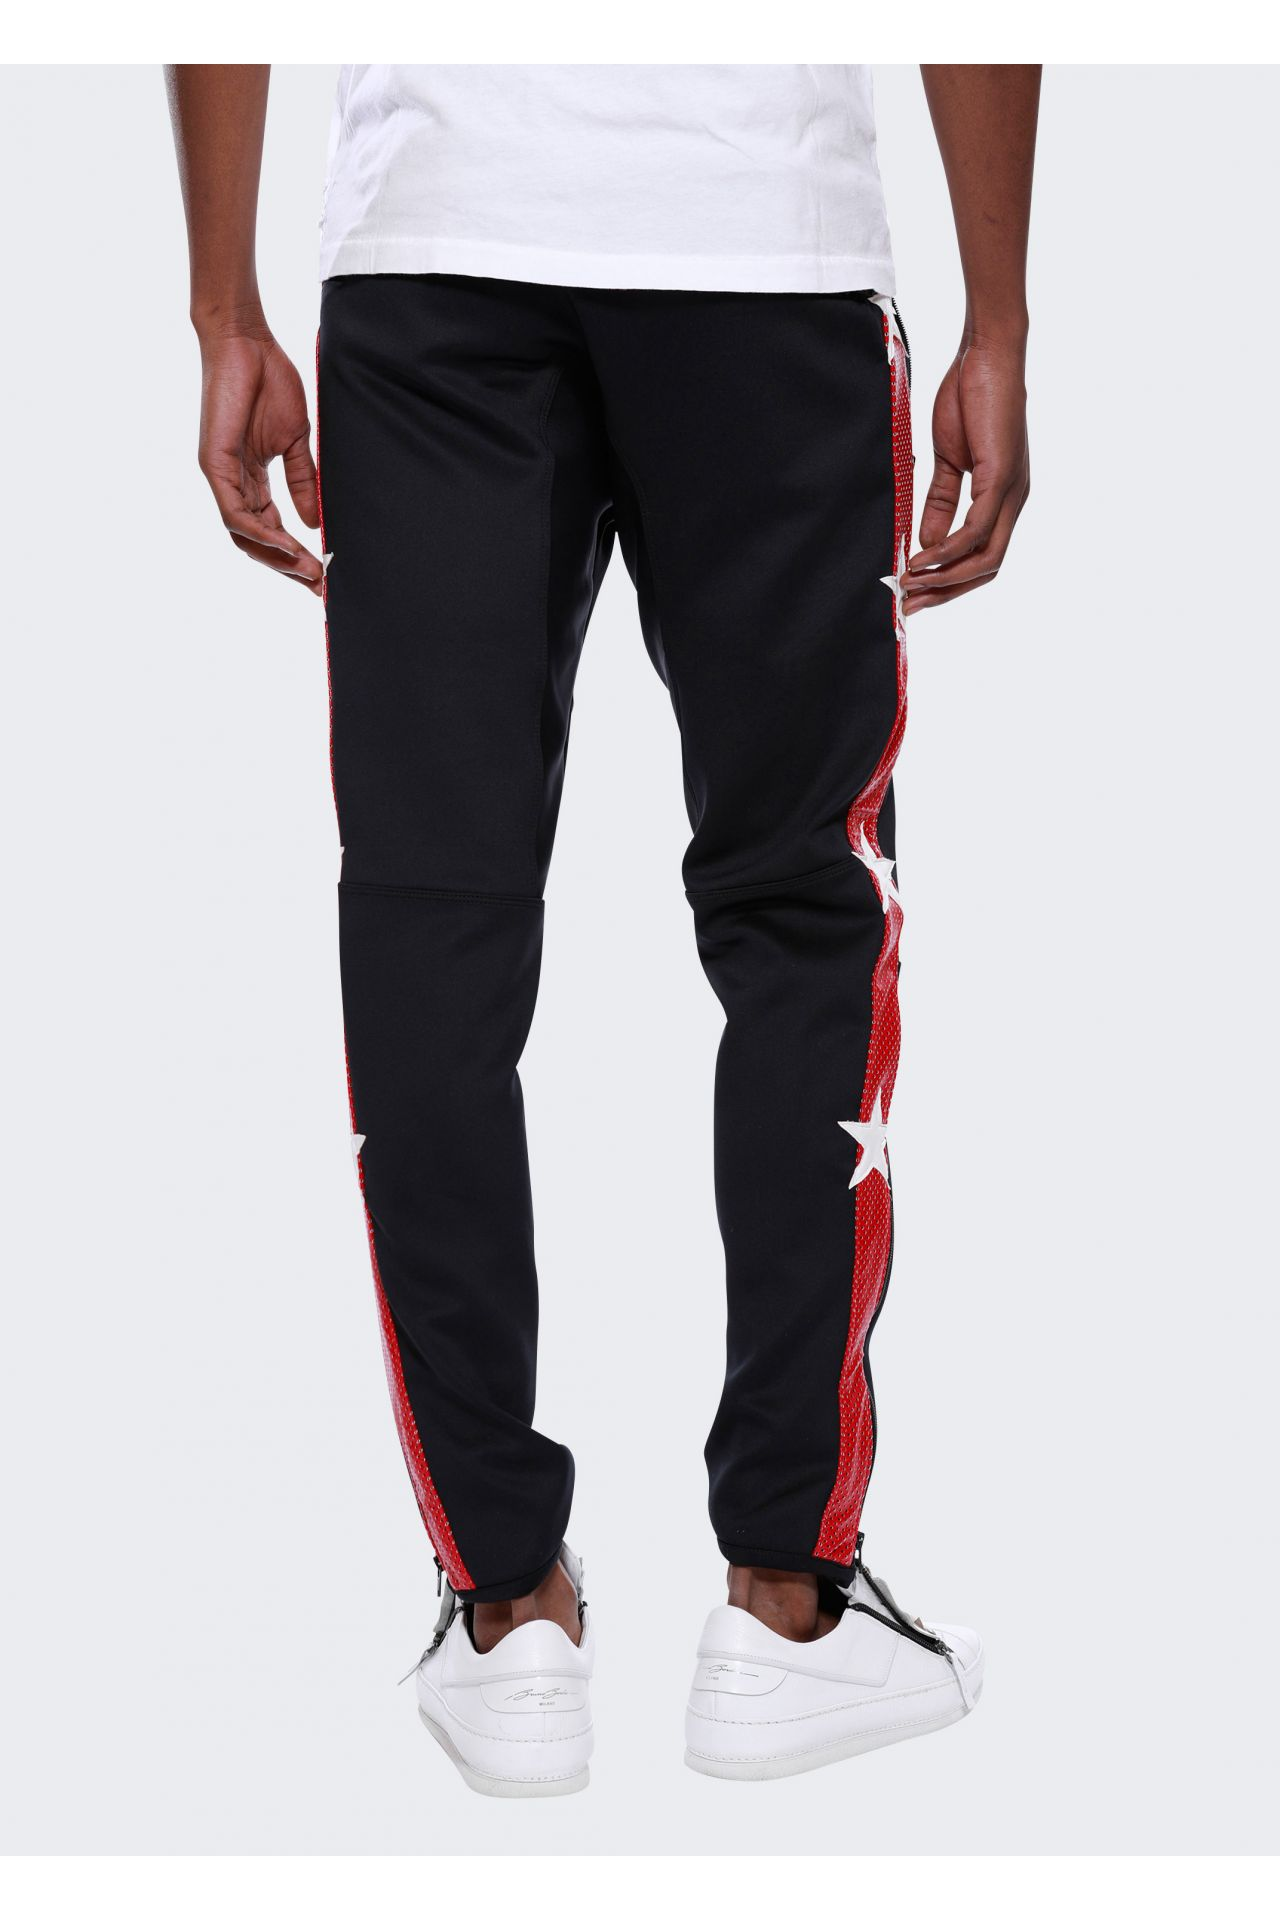 JOGGER WITH PATCHES IN BLACK